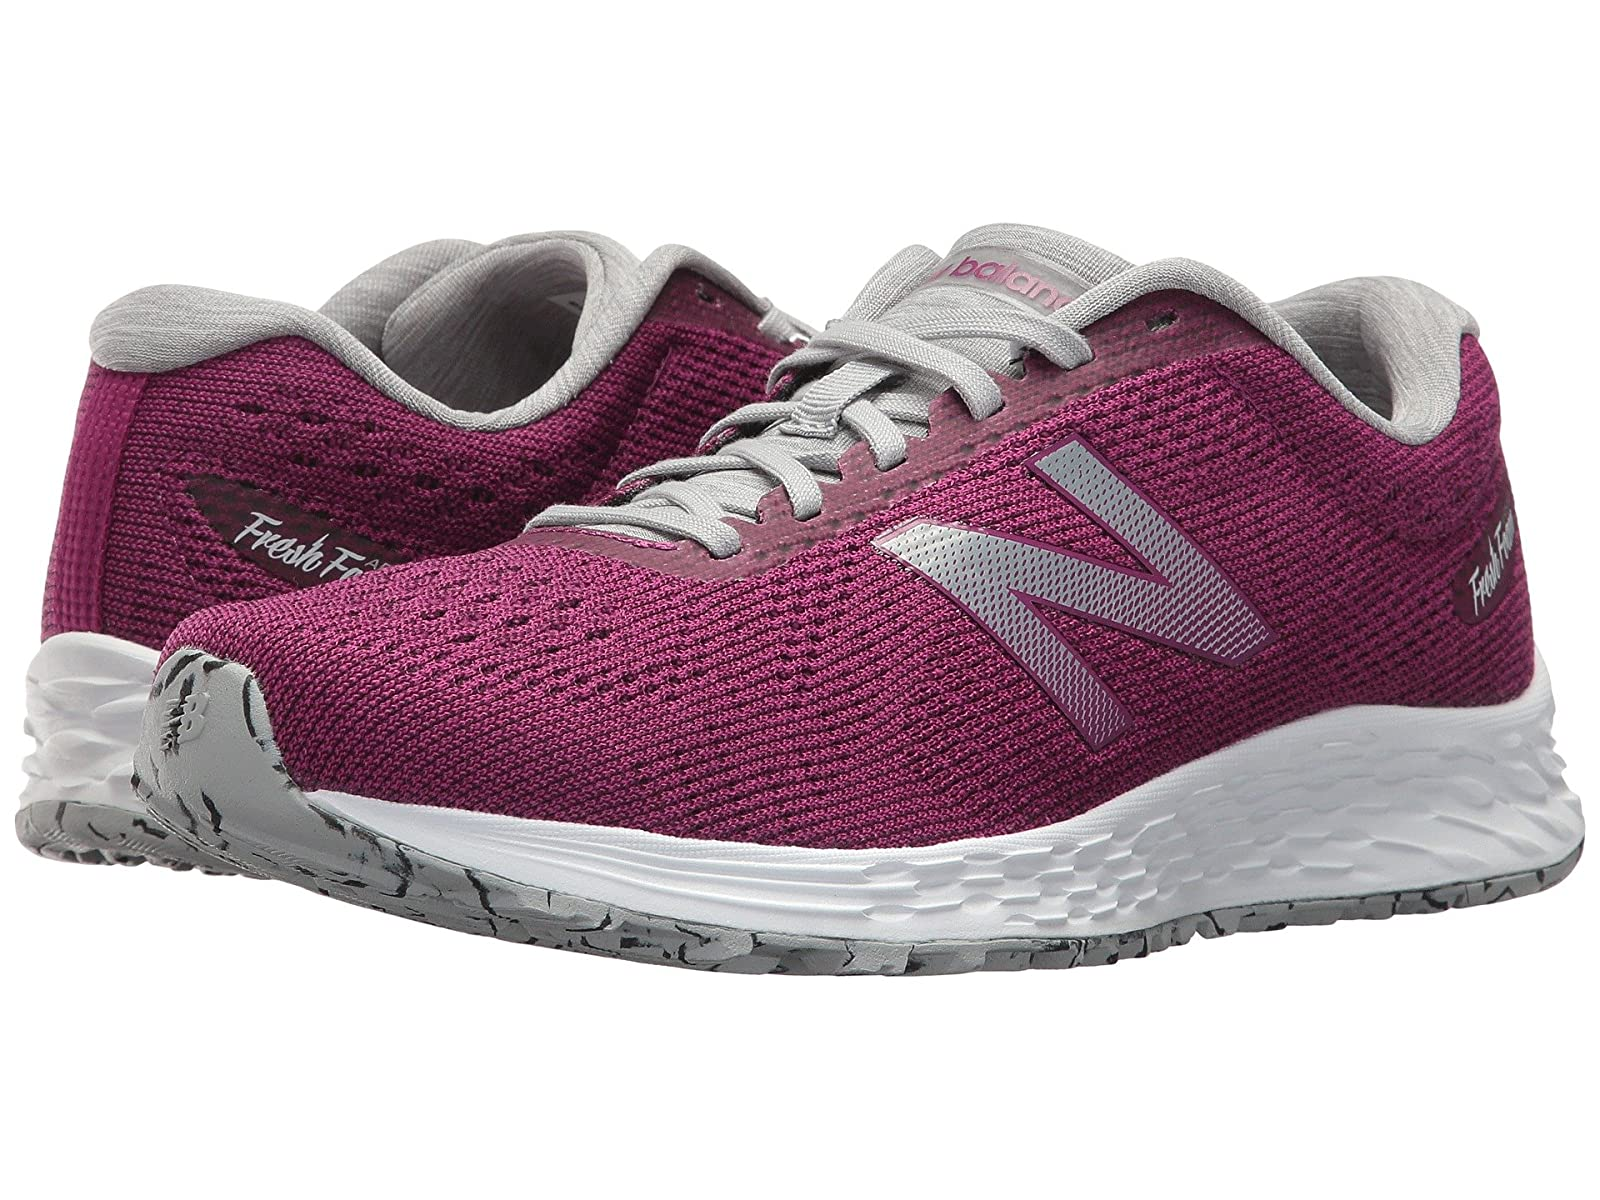 New Balance Arishi v1 Up-to-date -Men/Women- Up-to-date v1 styling d3d442